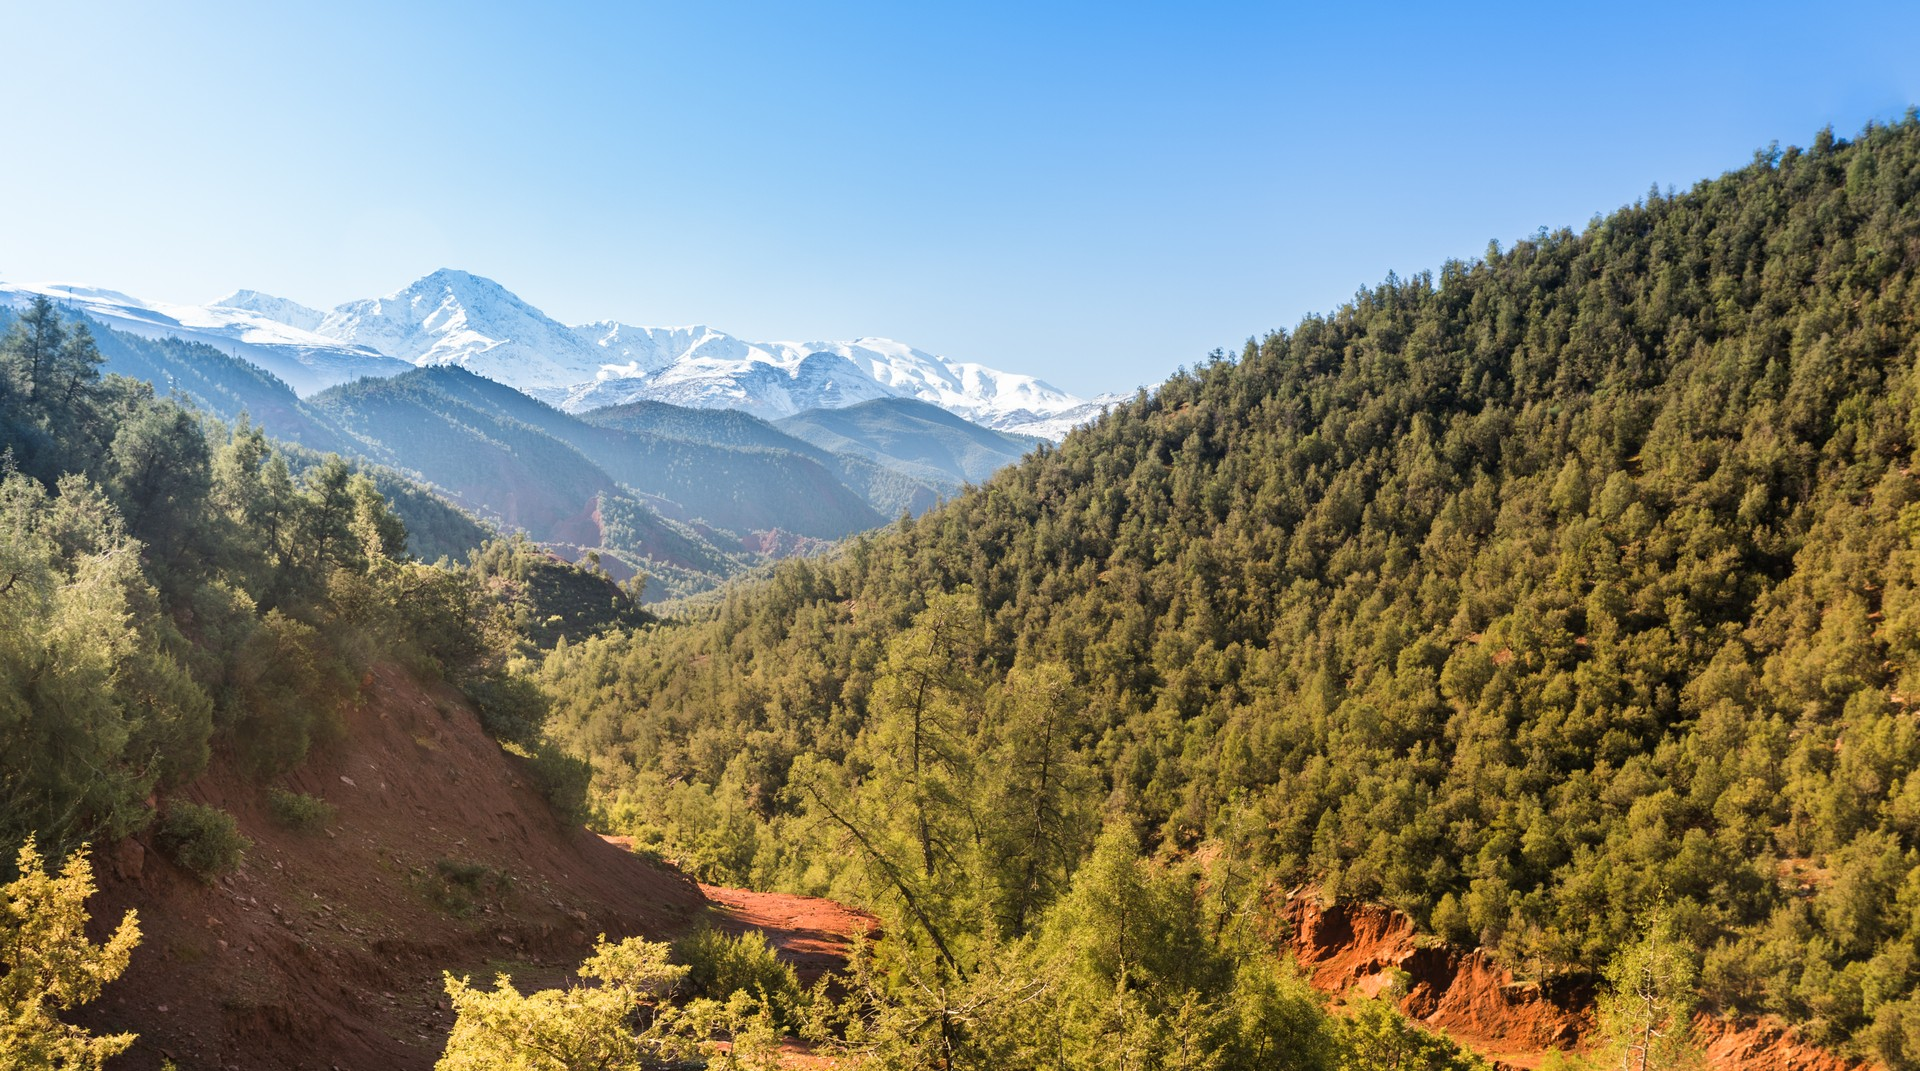 Snow-capped mountains in the Ourika Valley in Morocco's High Atlas